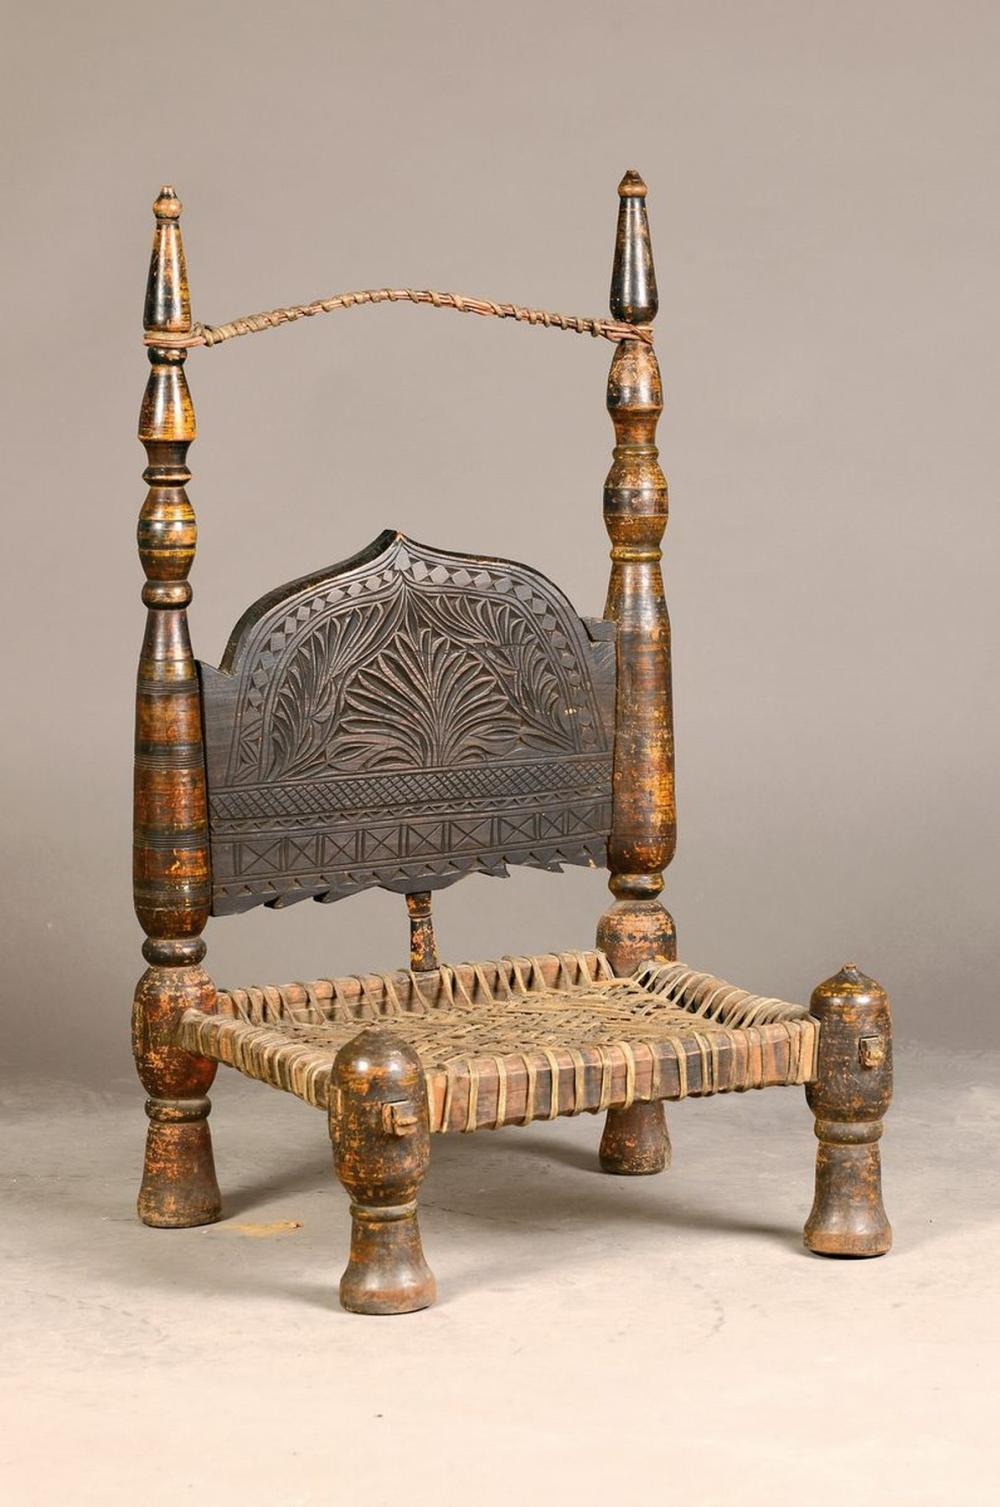 Armchair, Afghanistan, around 1900, seat with wickerwork